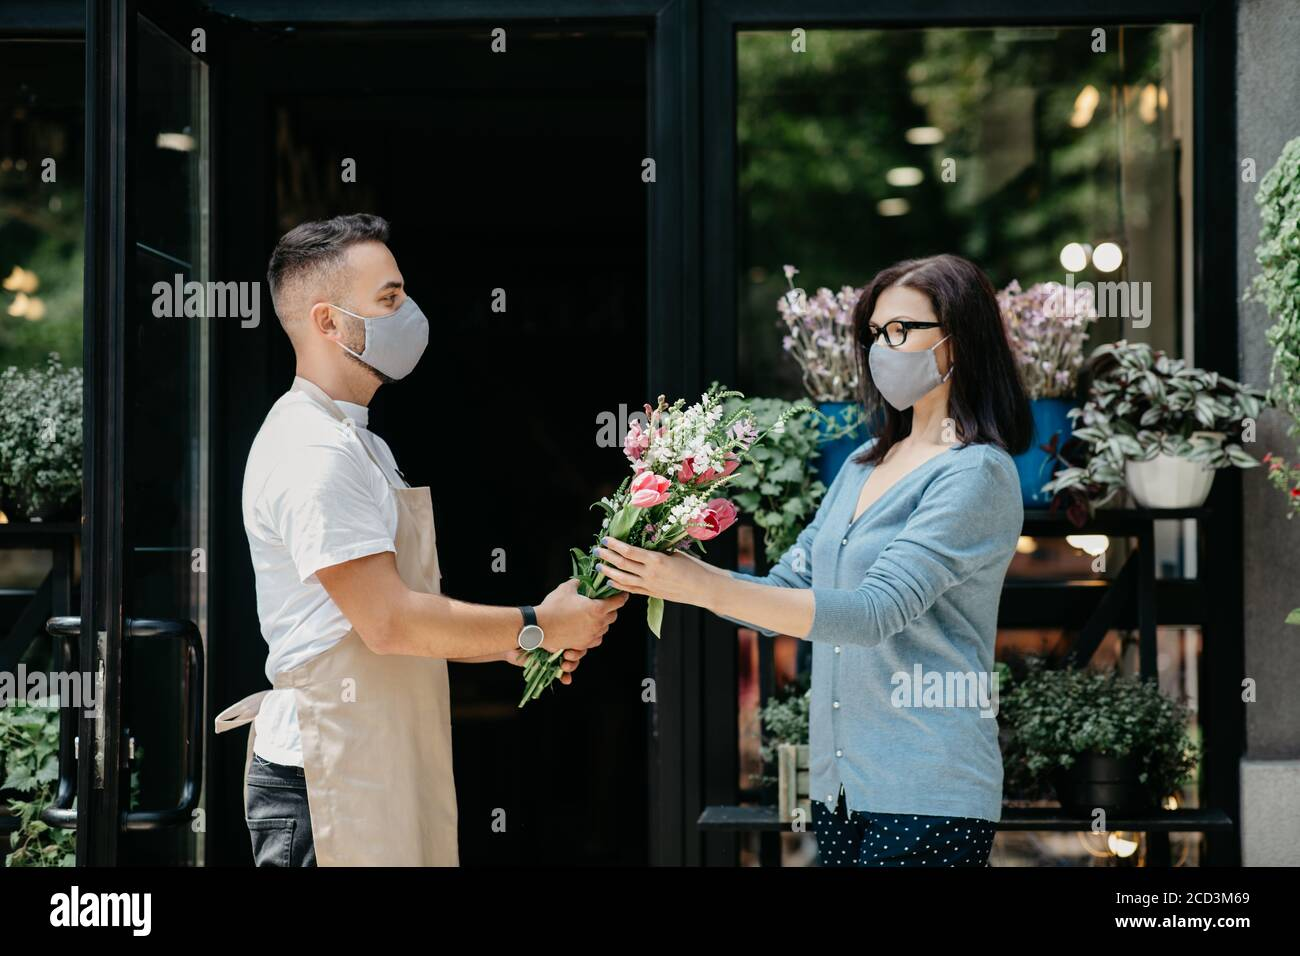 Customer service in flower shop. Man in protective mask gives bouquet to client Stock Photo